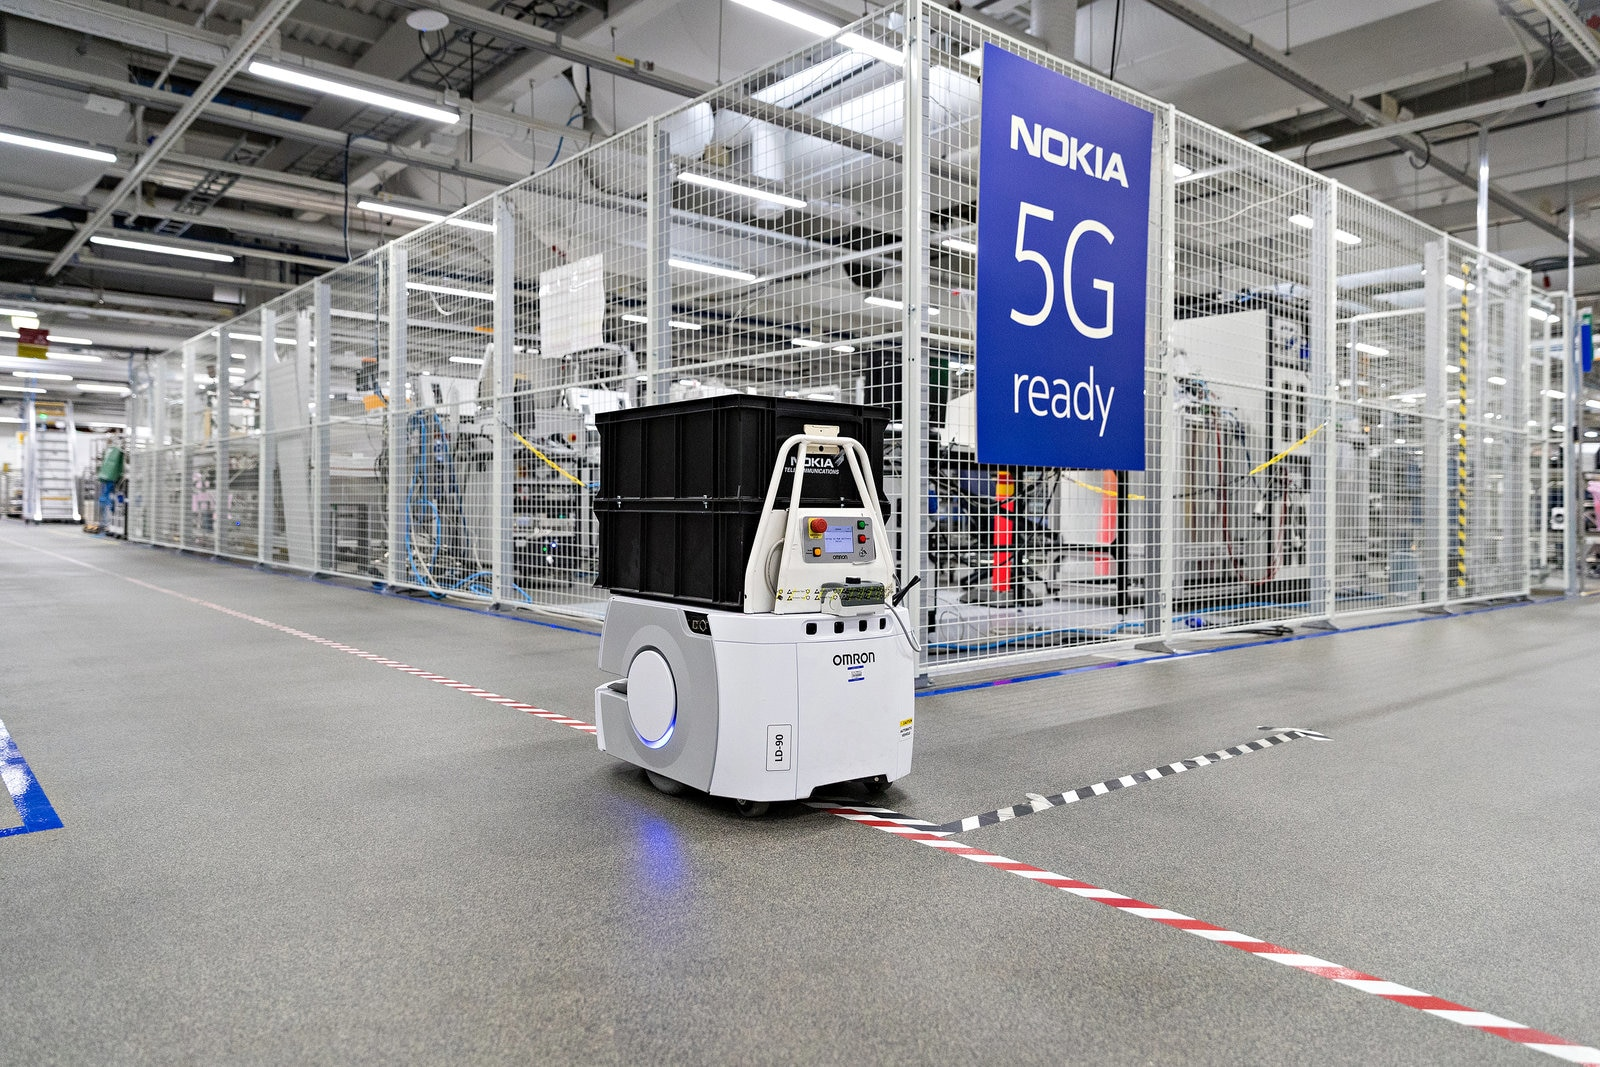 Nokia Expands IoT Business, Acquires SpaceTime Insight